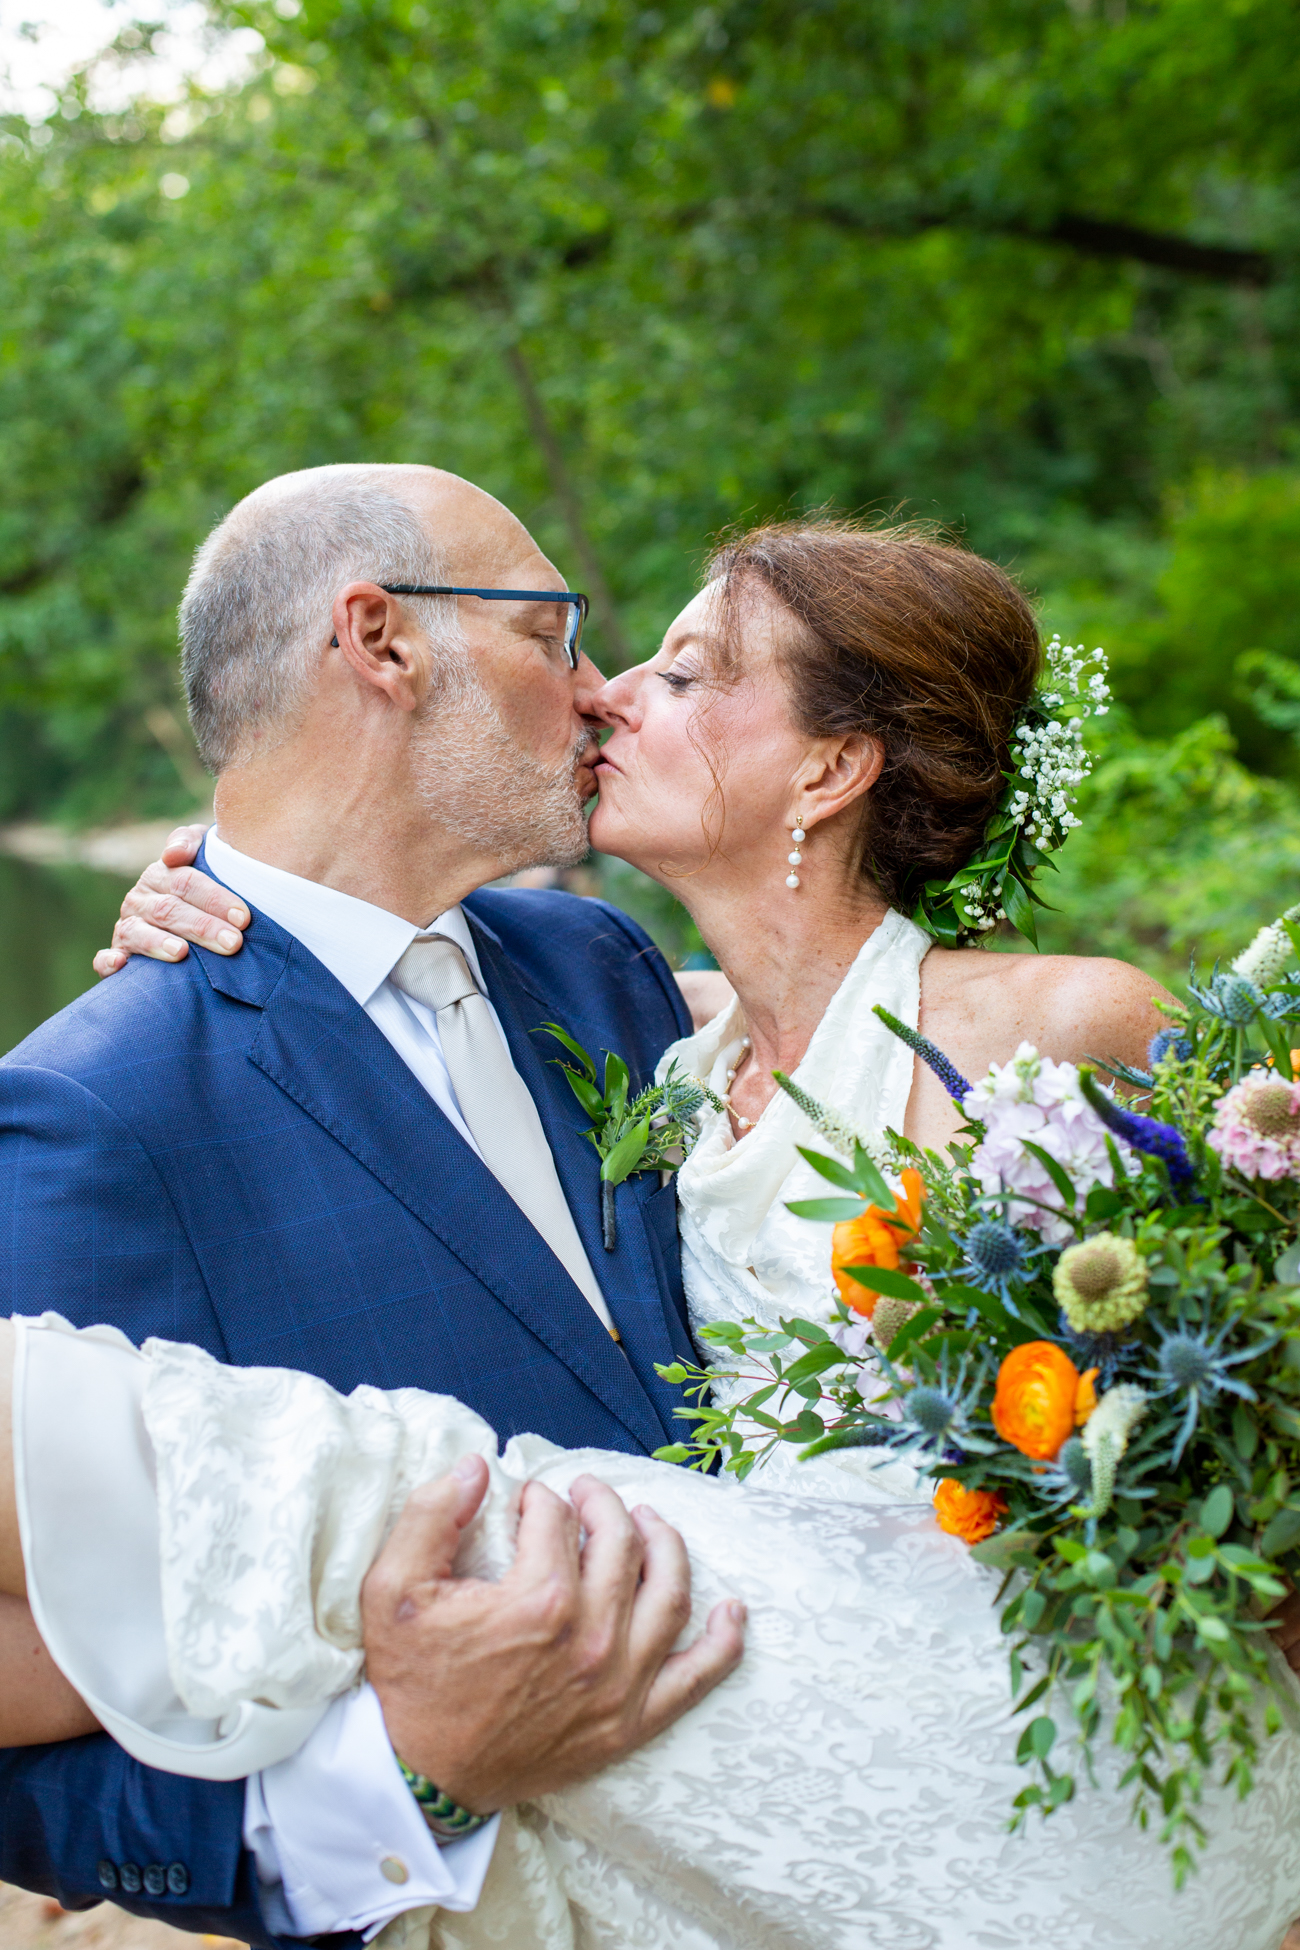 Melton-Kessler Wedding at Valley Green Inn by Avi Loren Fox LLC-40.jpg